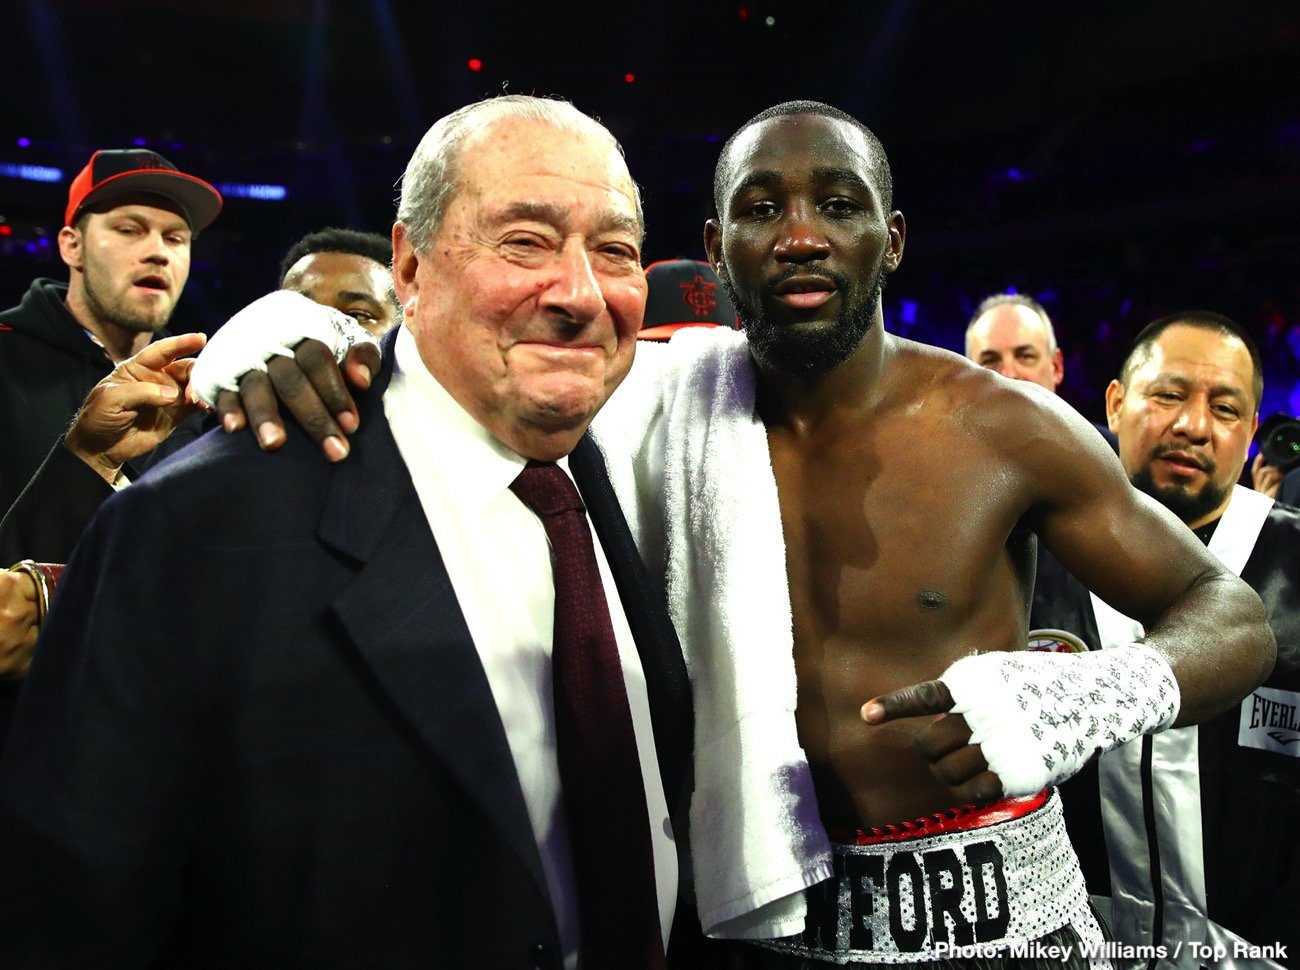 Patrick Teixeira, Terence Crawford - Fans want to see Terence Crawford, one of the best fighters out there today, fight the very best. To that end, they want to see him fight rival pound-for-pounder and rival welterweight belt-holder Errol Spence. It's one of the most talked-about, demanded fights in boxing right now. But what if it doesn't happen any time soon (or, heaven forbid, not at all)?